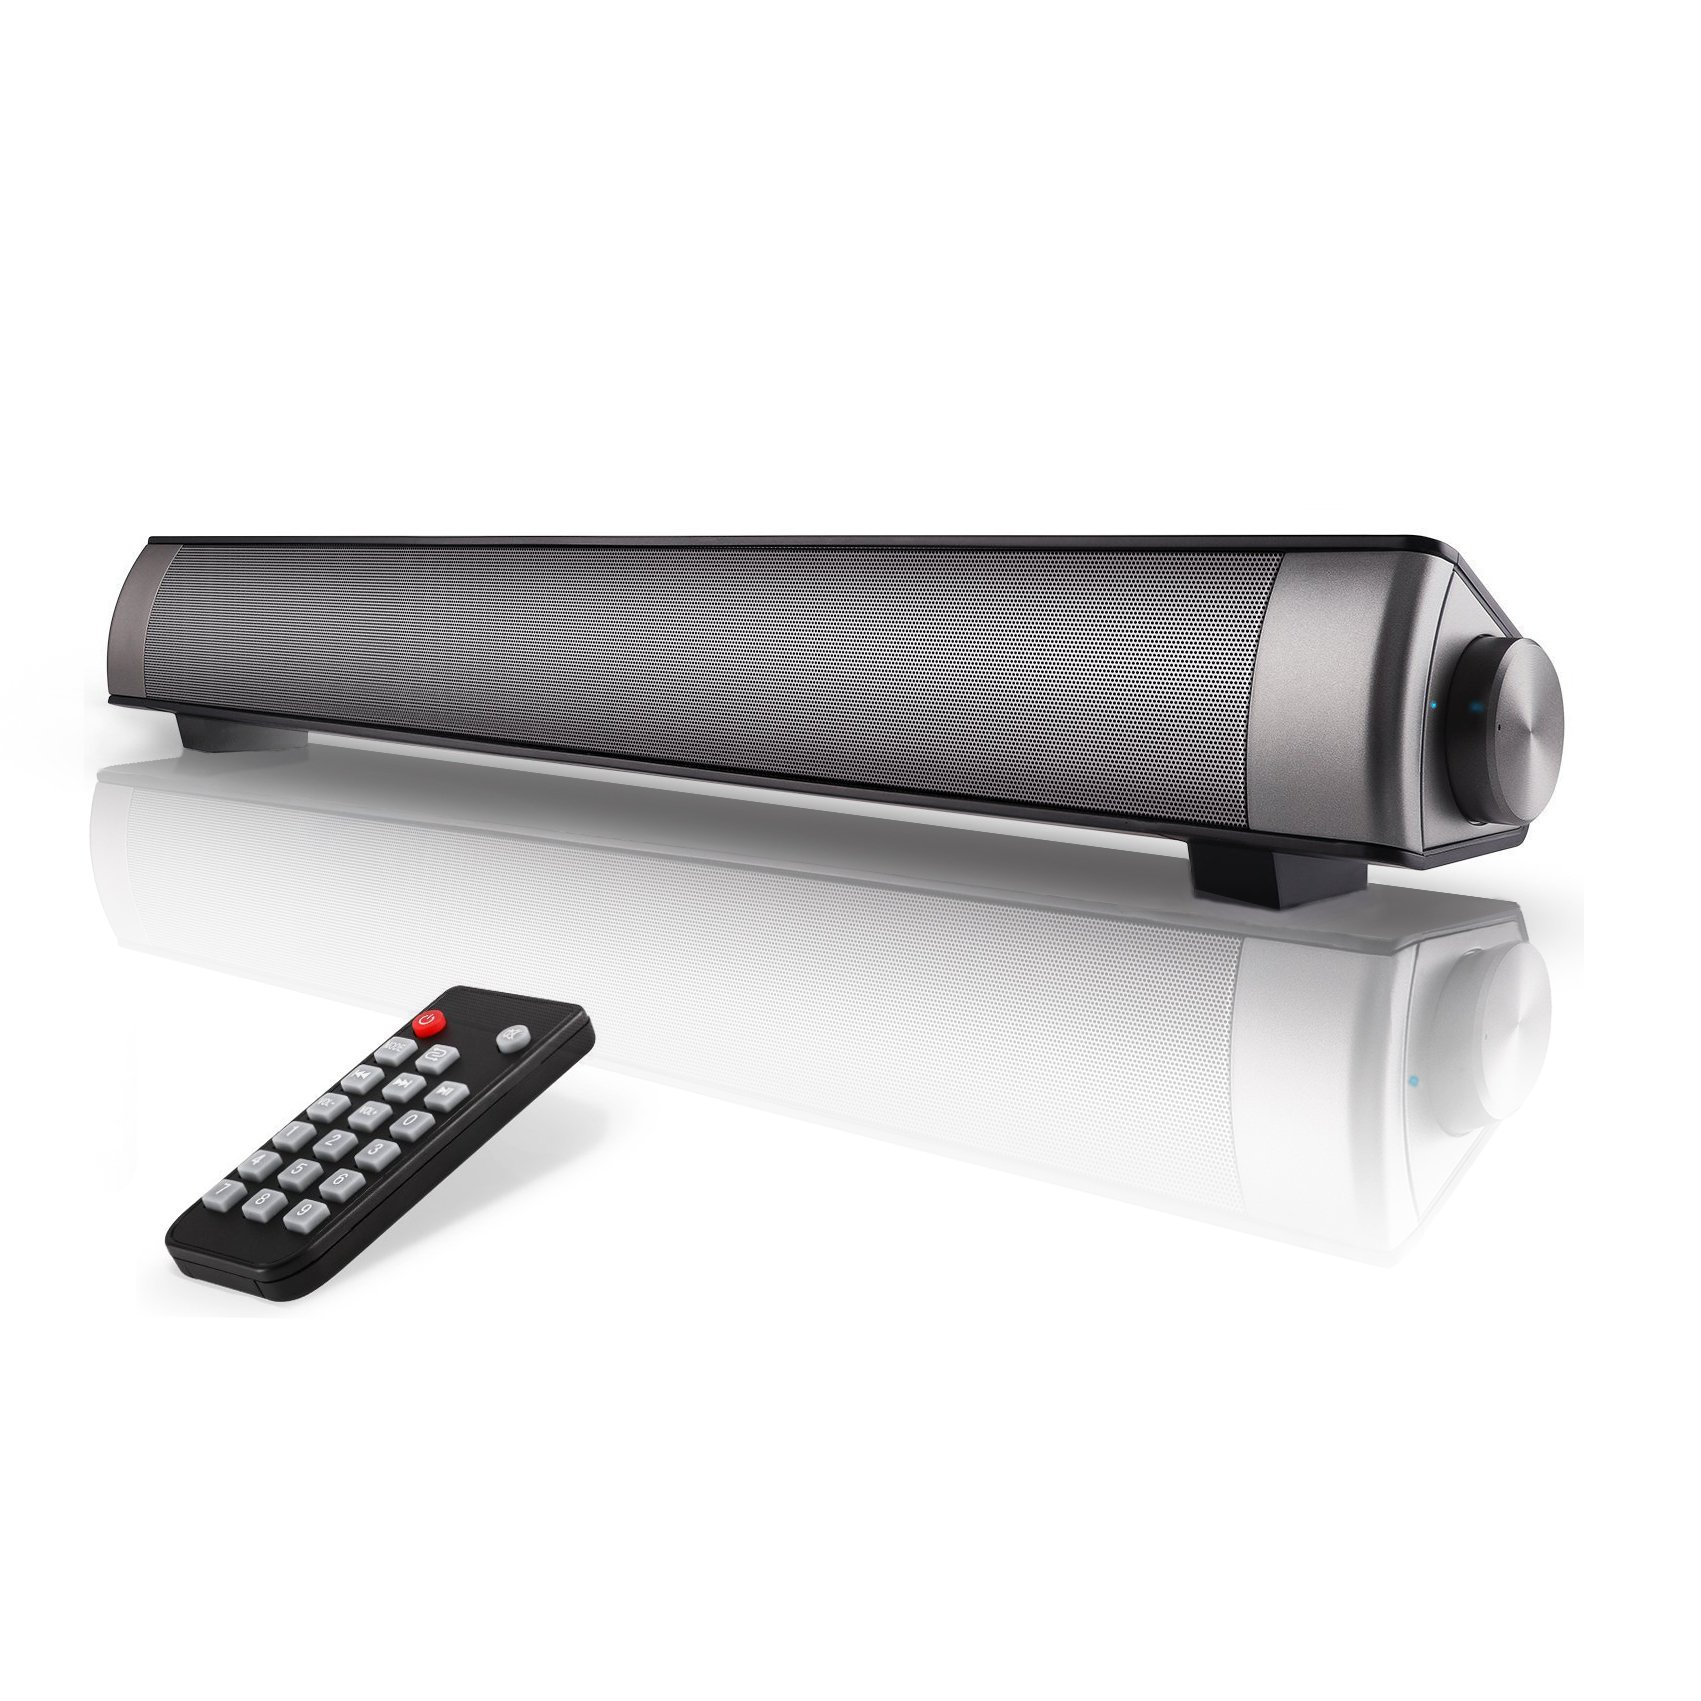 Sound Bar TV Soundbar Wired and Wireless Bluetooth Home Theater TV Speaker, Surround Sound Bar for TV, PC, Cellphone (Only Fit for AUX & RCA Audio output tv) by FoolHome (Image #1)